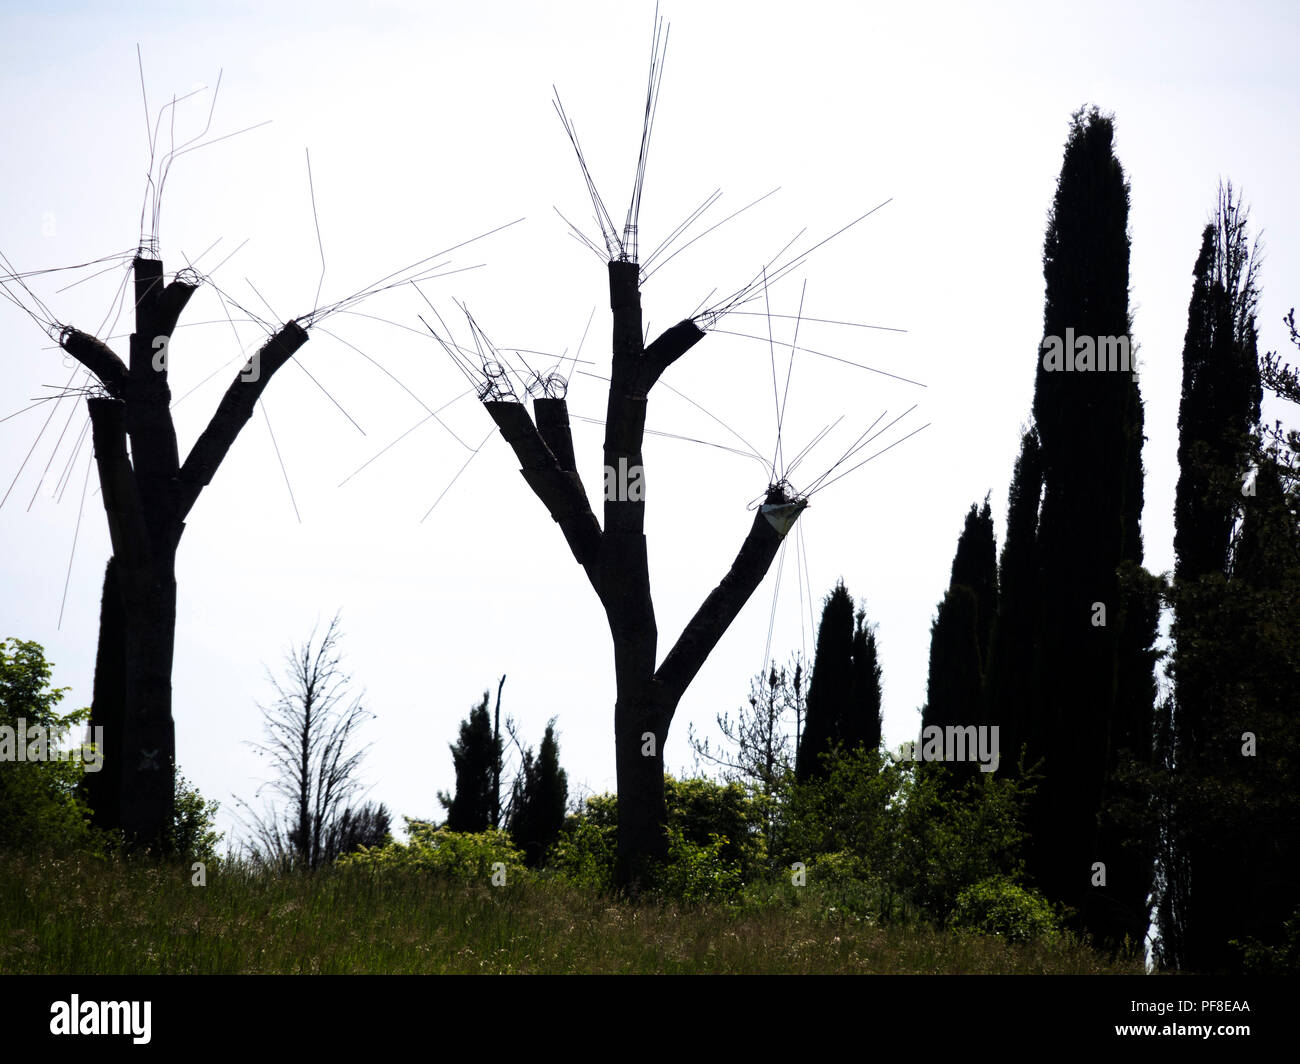 Silhouettes of trees from which branches have been pruned in backlighting - Stock Image